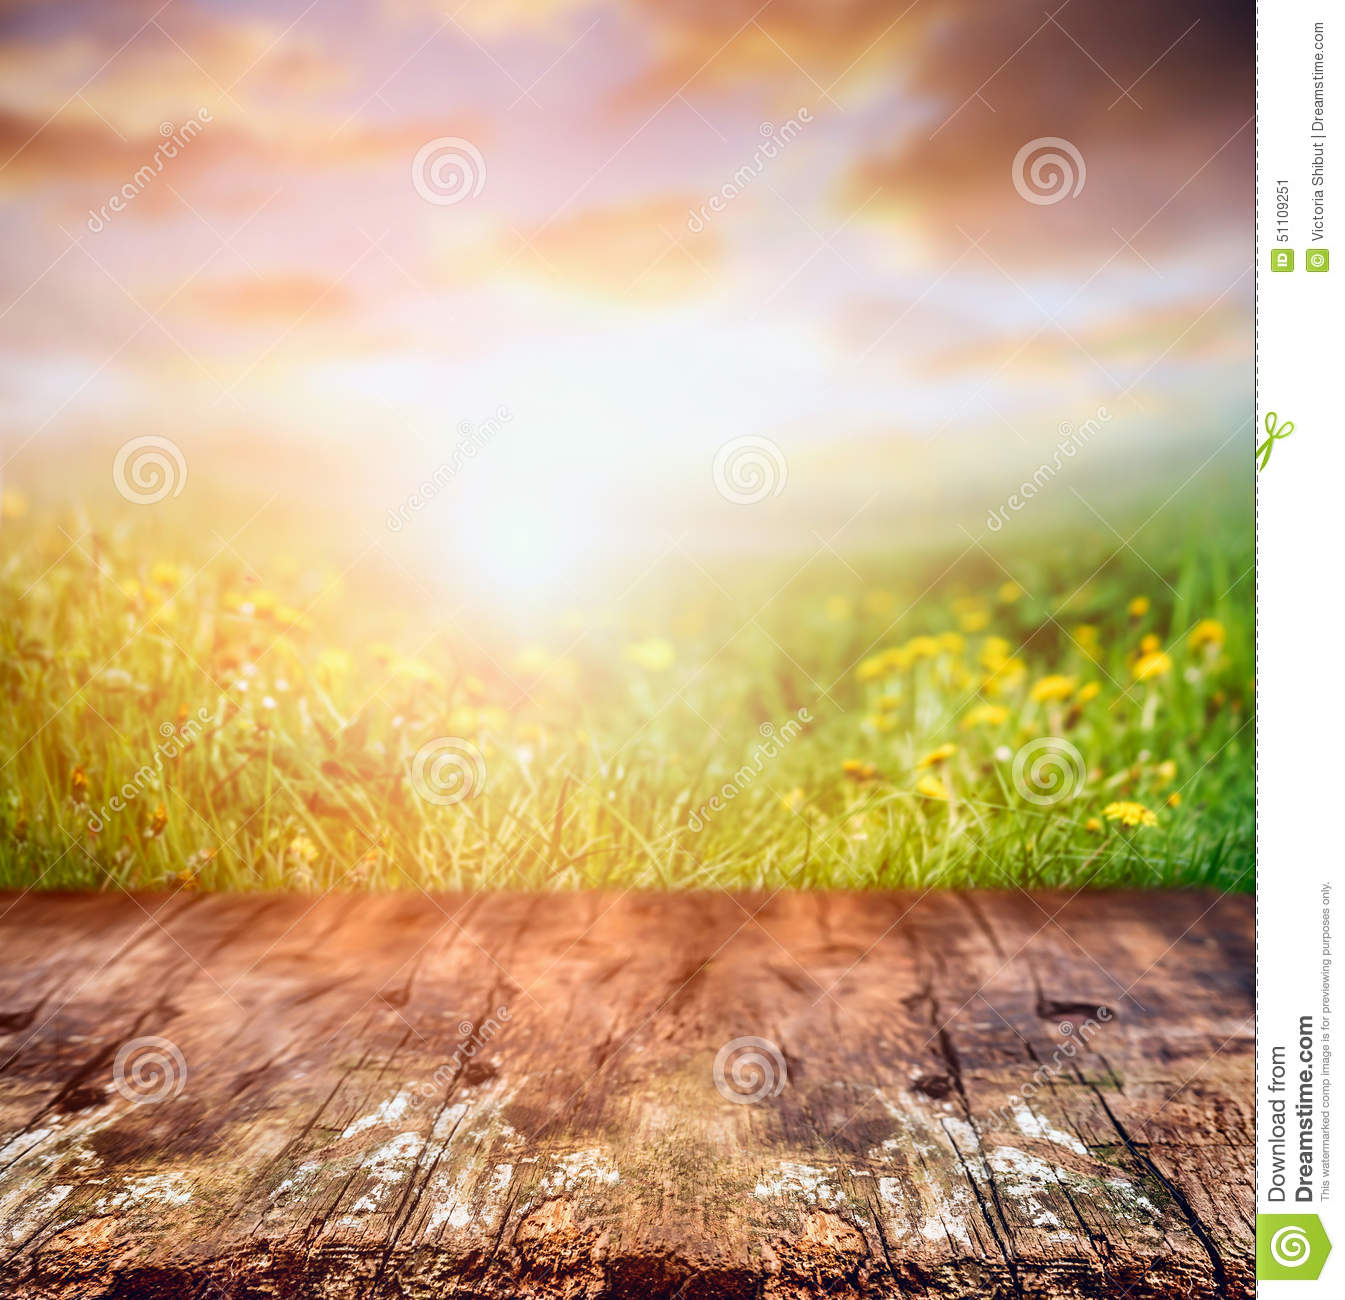 Fall In Central Park Wallpaper Rustic Wooden Table Over Yellow Dandelion Field And Sunset